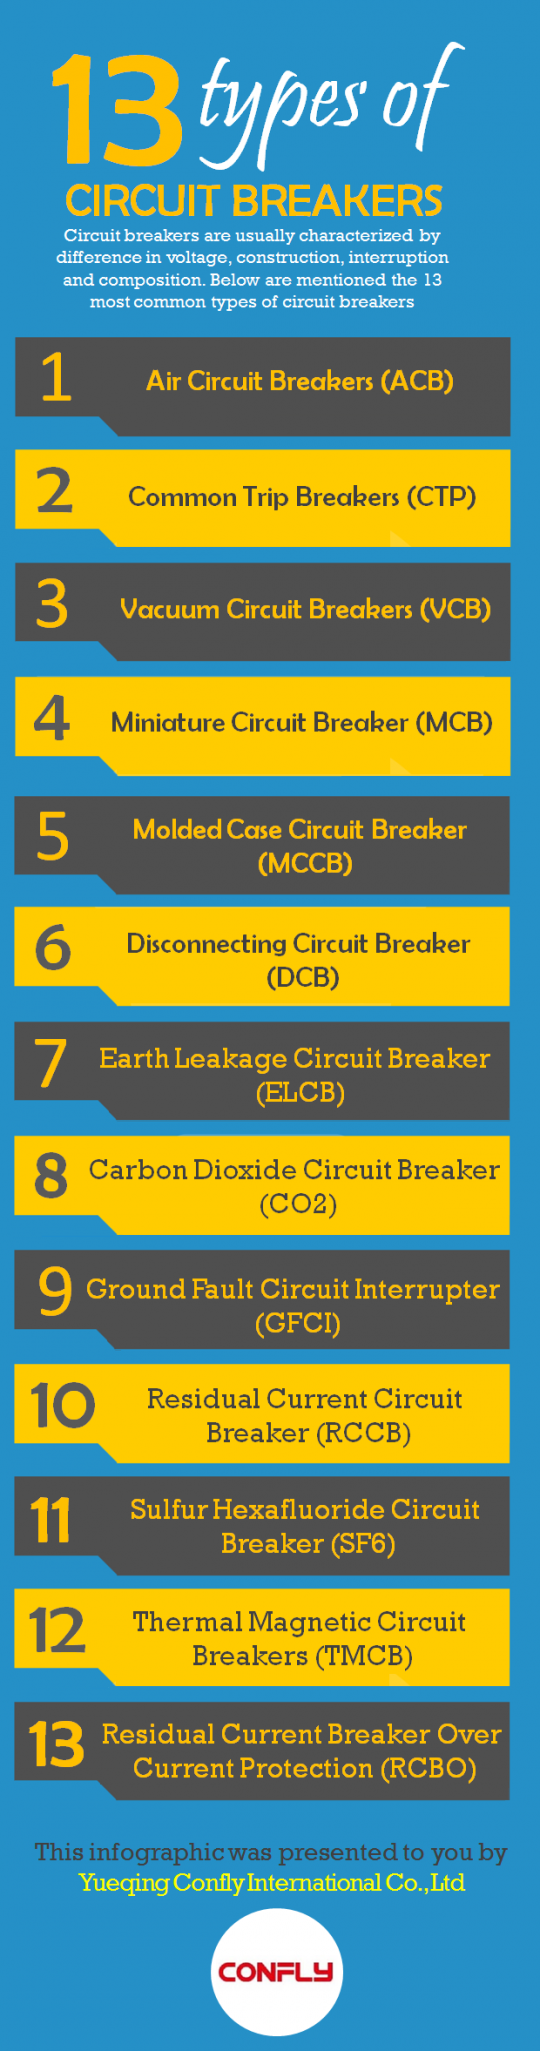 13 Types Of Circuit Breakers By Yueqing Confly